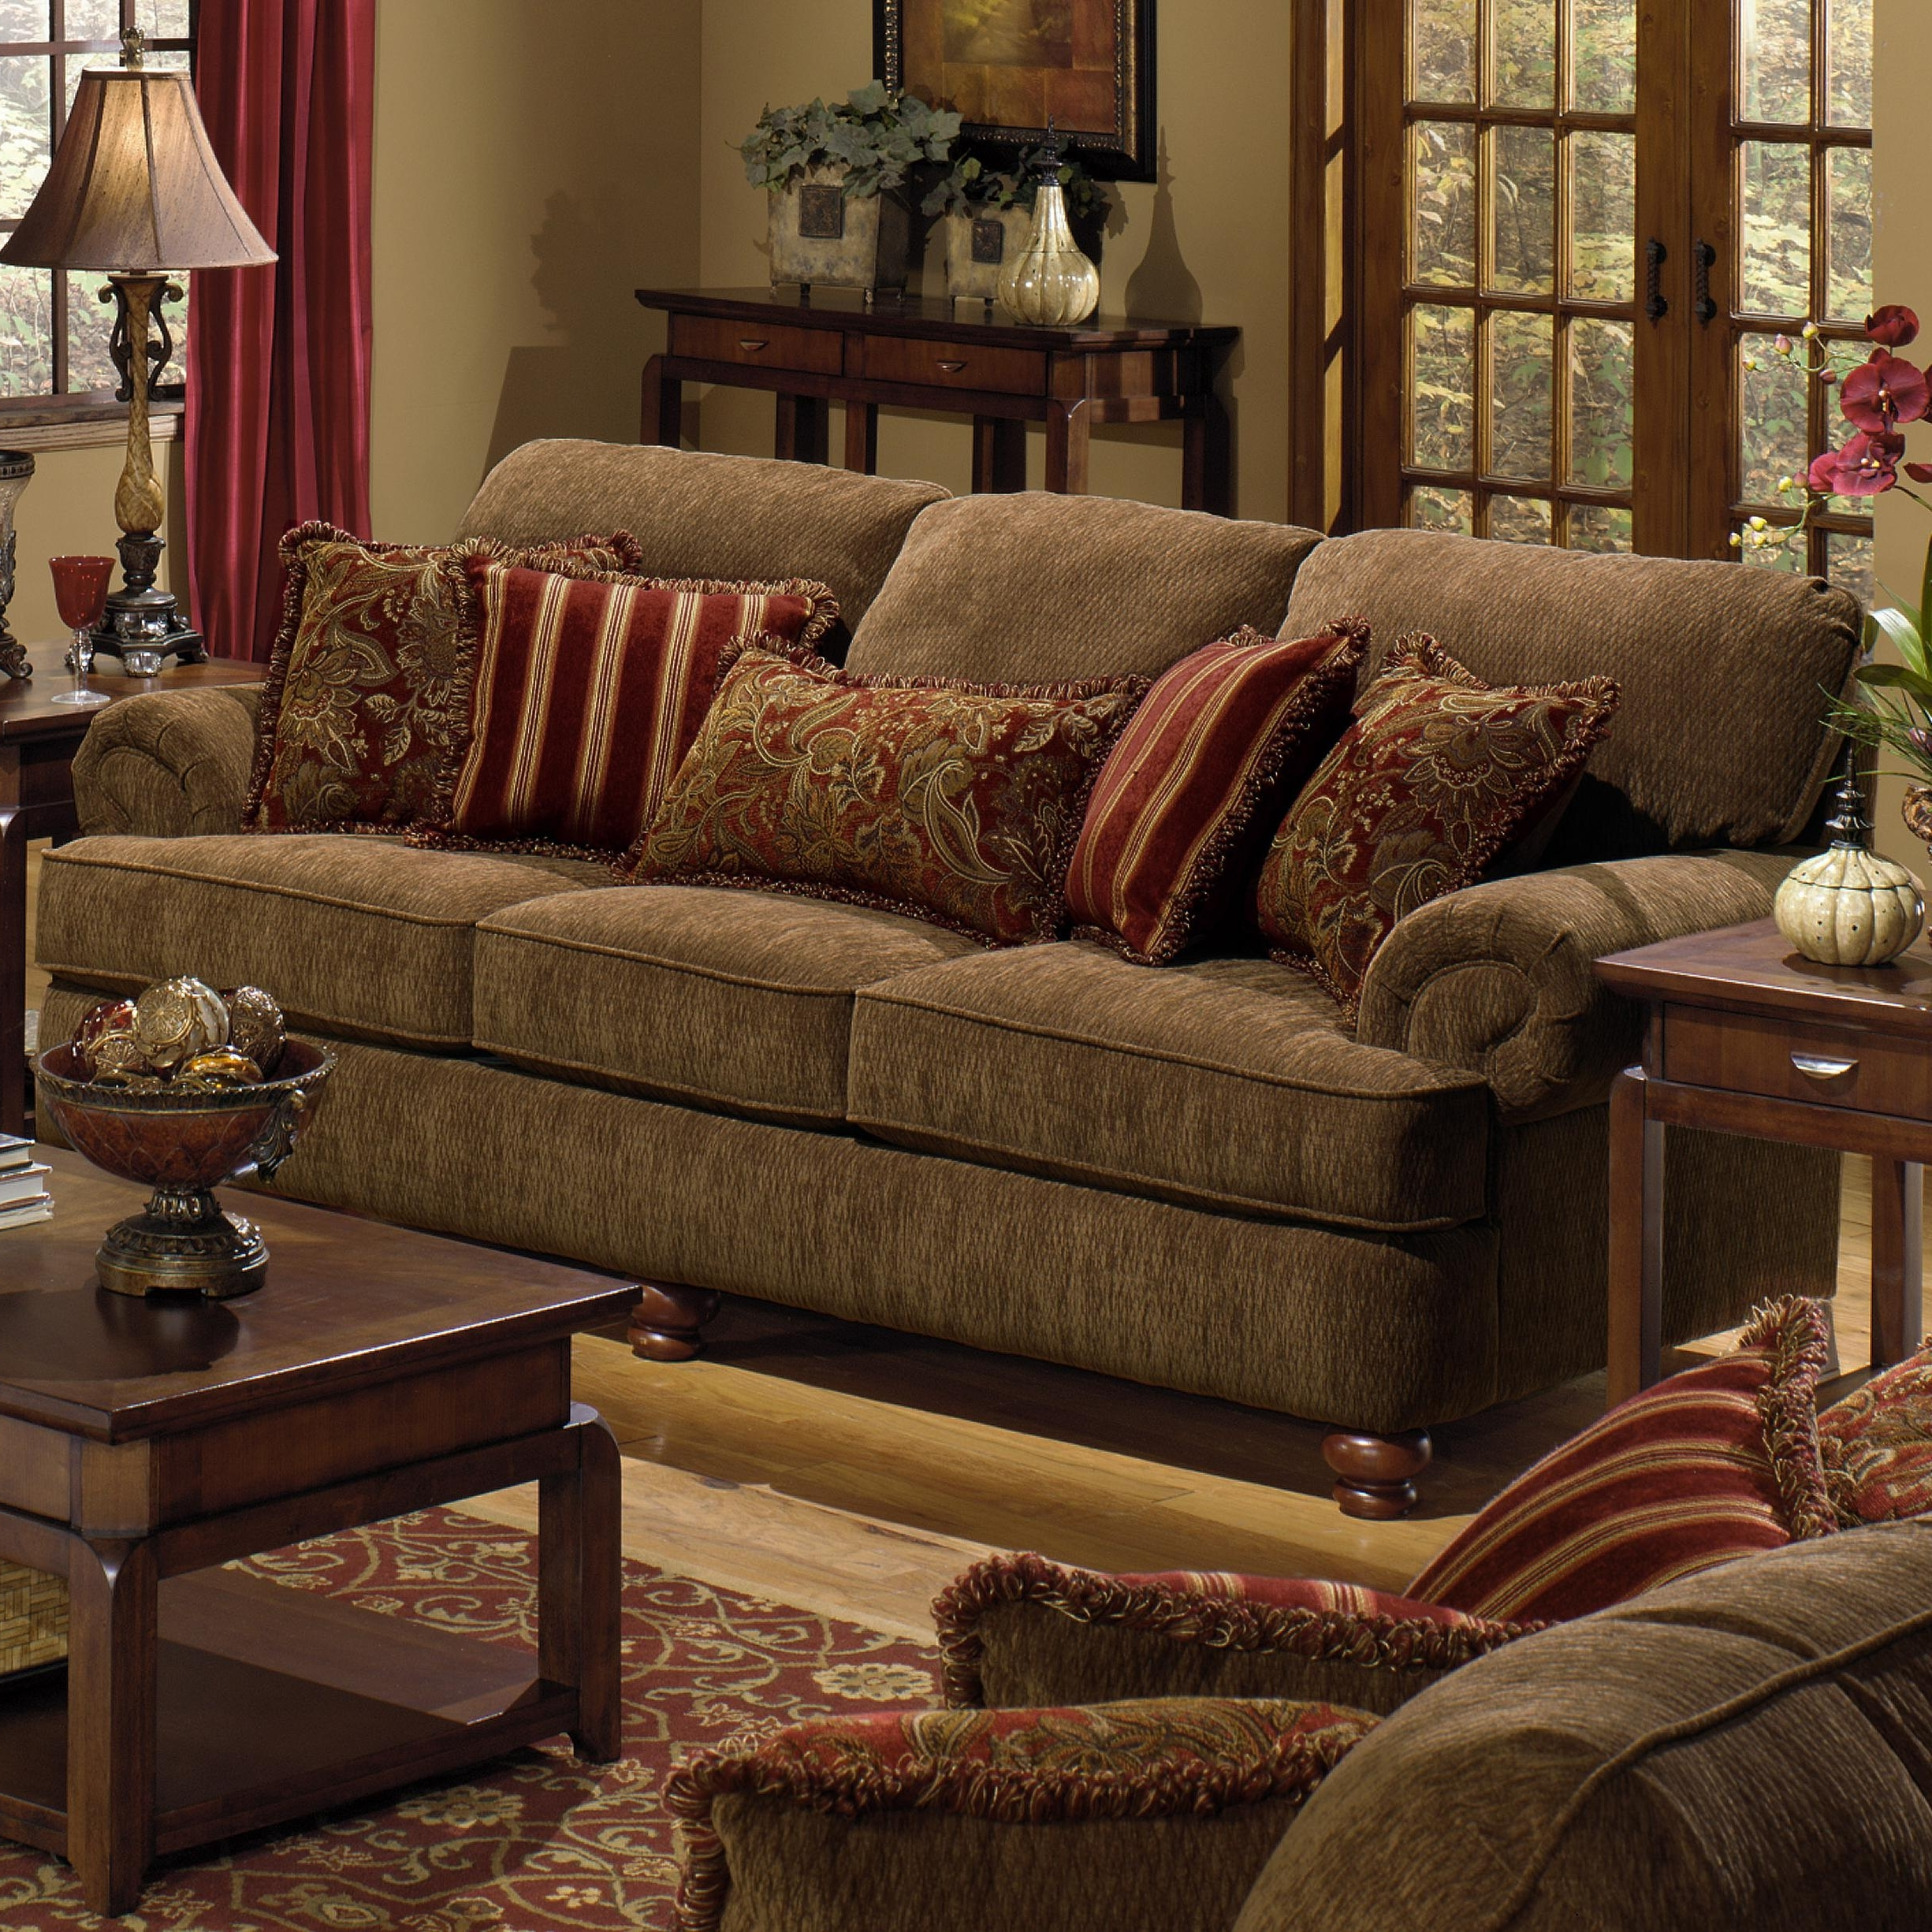 Well Known Living Room : Decorative Pillows For Sofa Cheap Decorative Regarding Sofas With Oversized Pillows (View 14 of 15)